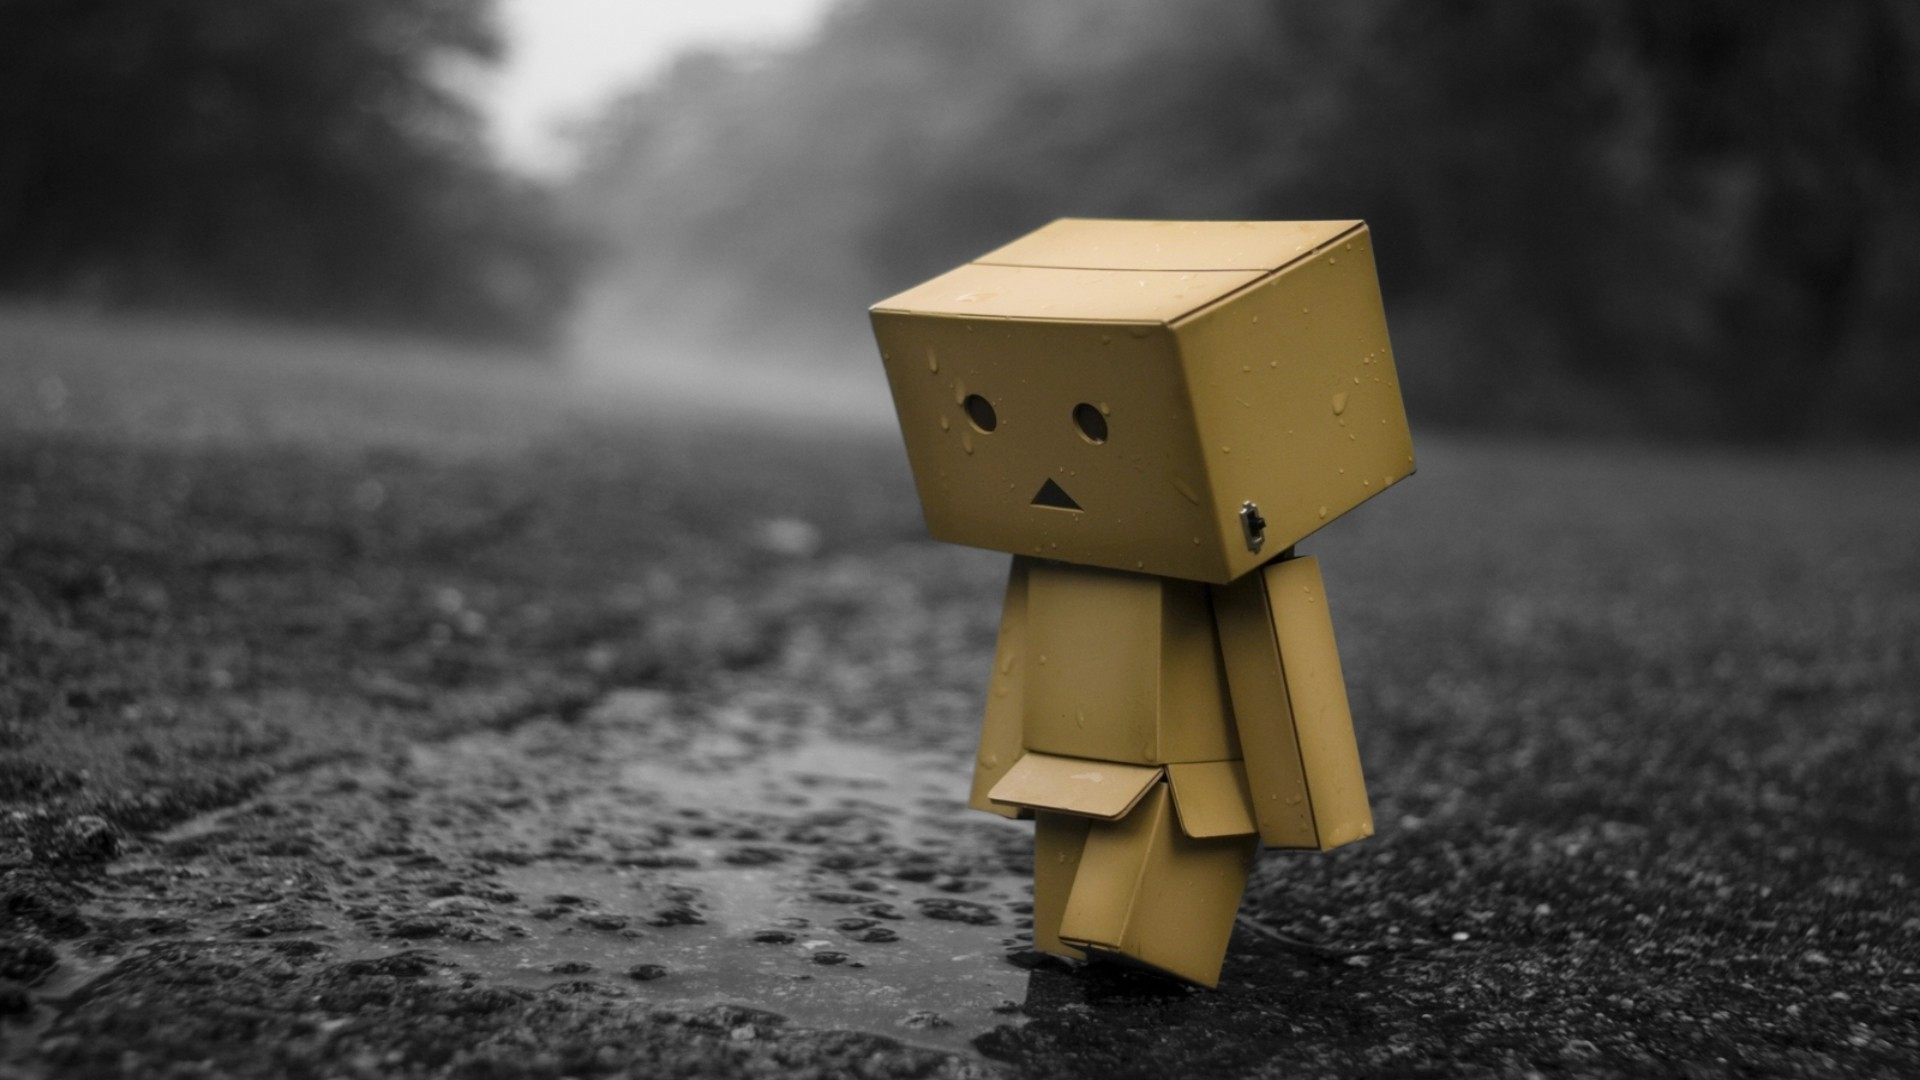 Danbo Sad Wallpaper New Collection x7hodtcz   Yoanucom 1920x1080